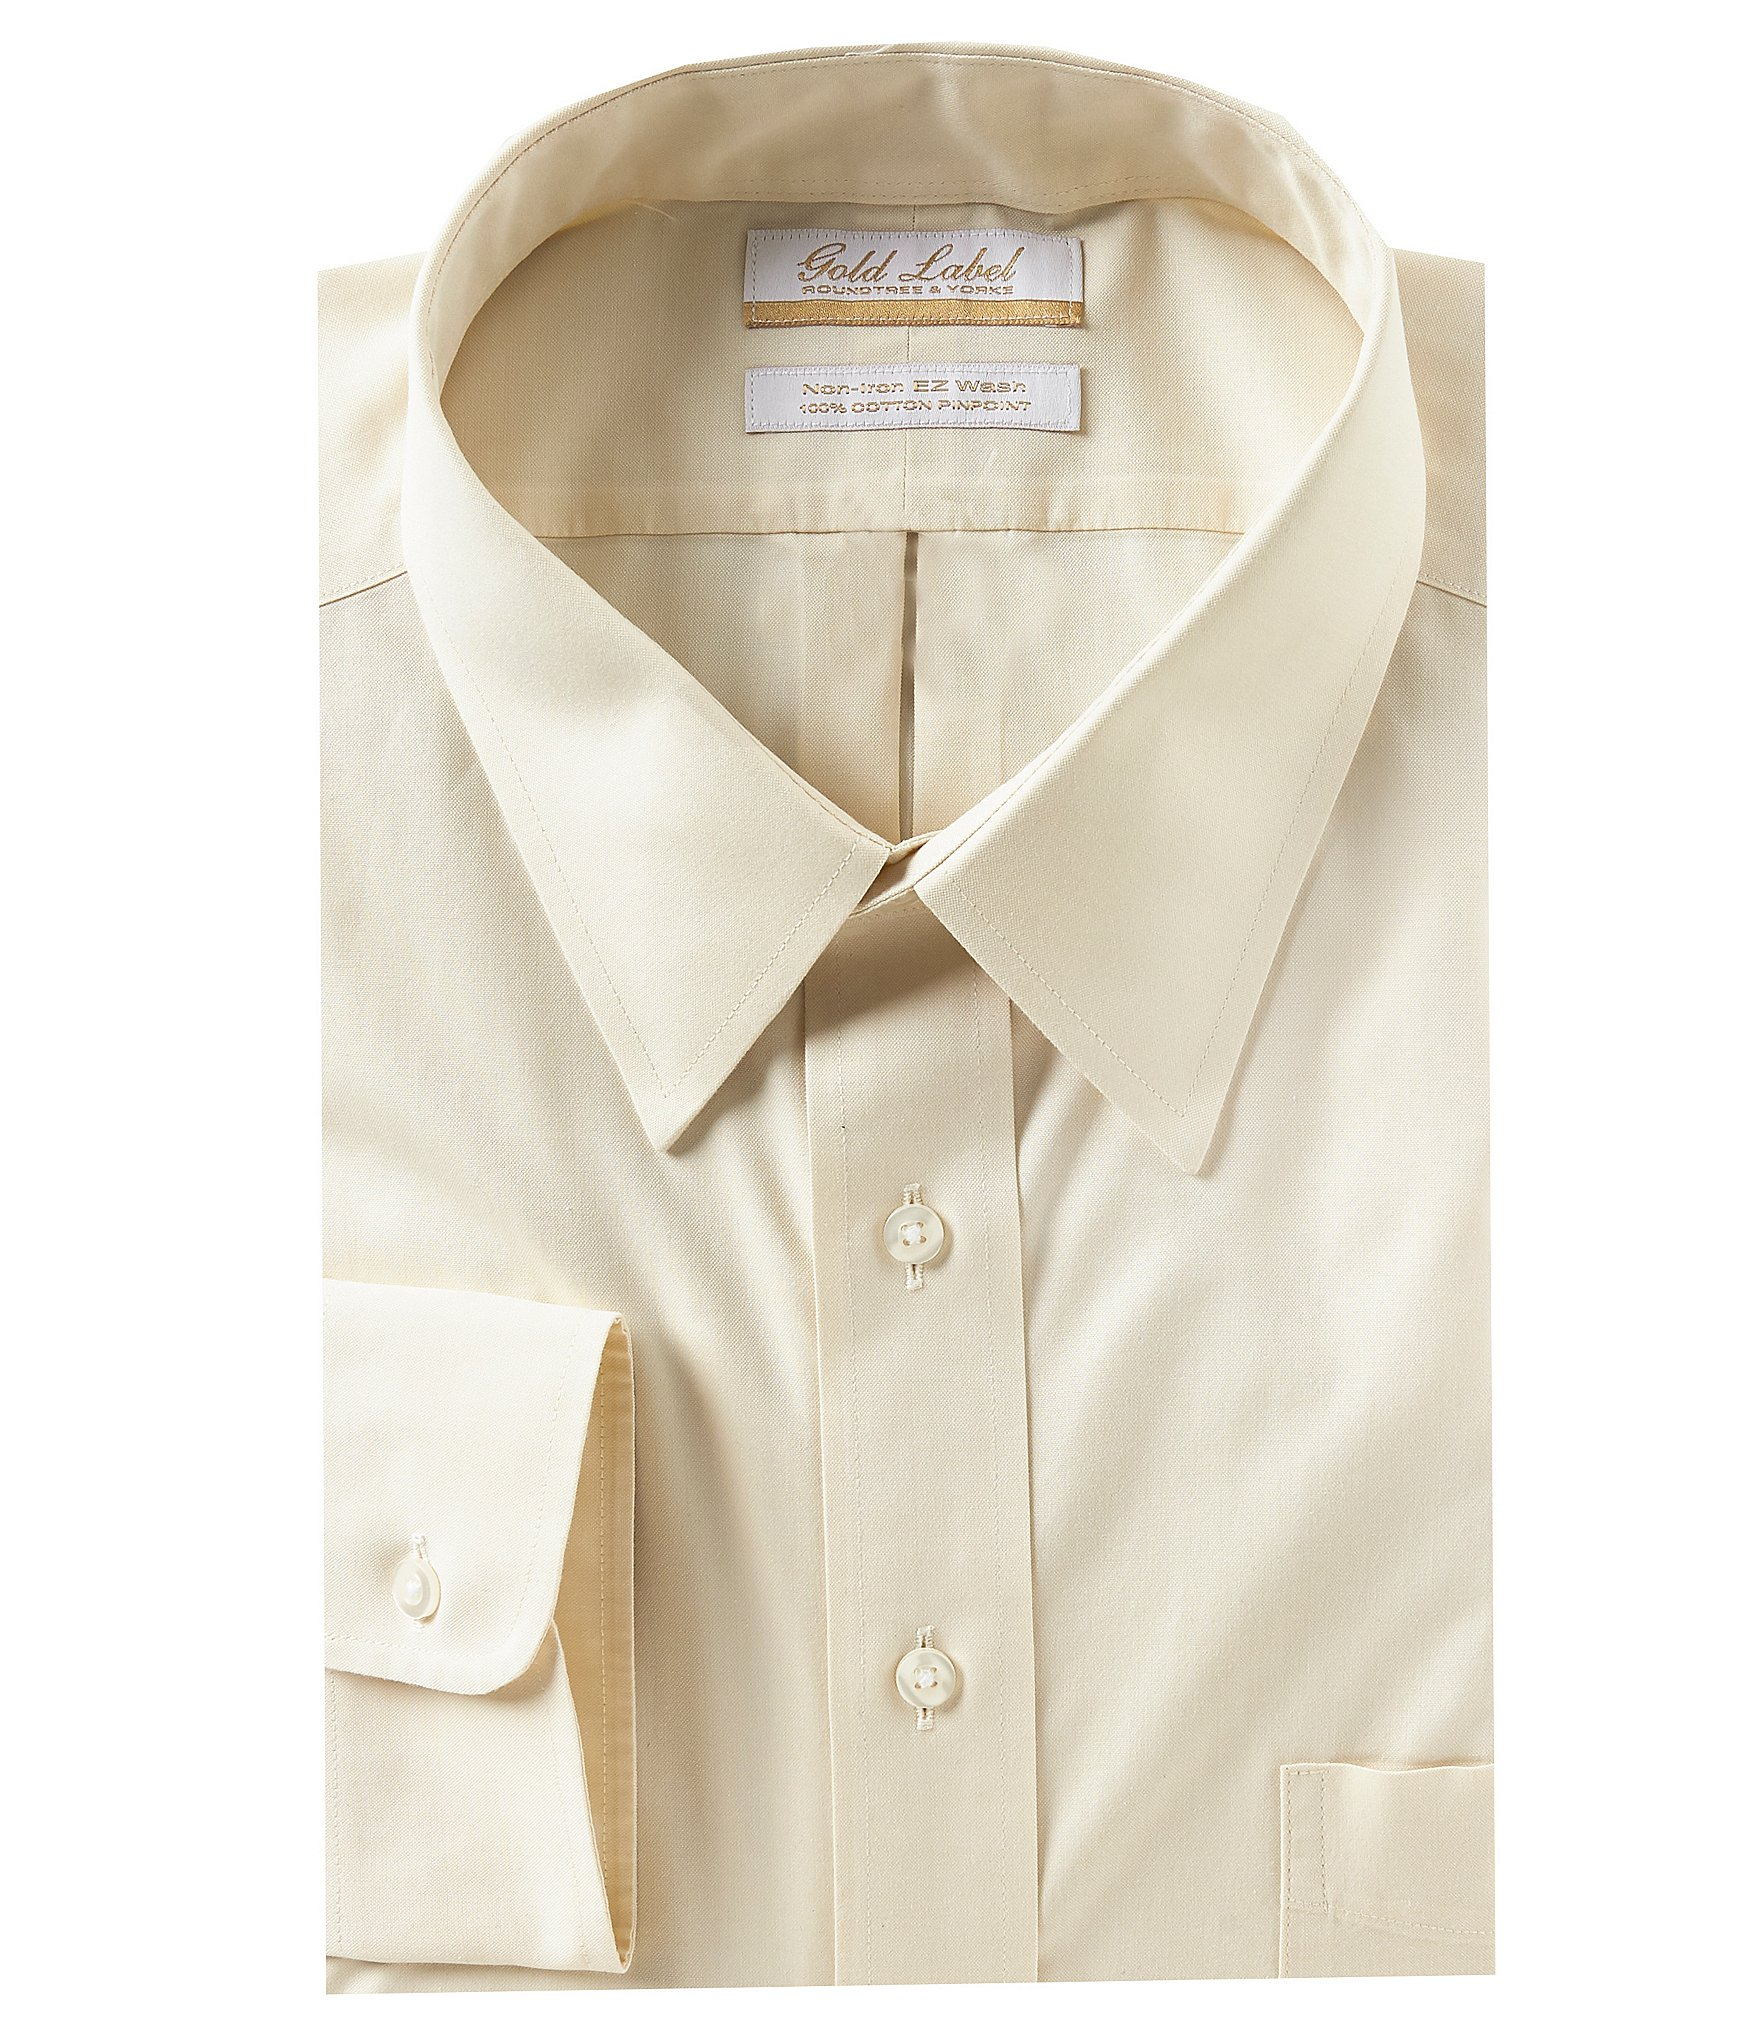 Gold Label Mens Big and Tall Non-Iron Pinpoint Dress Shirt Button-Down Collar